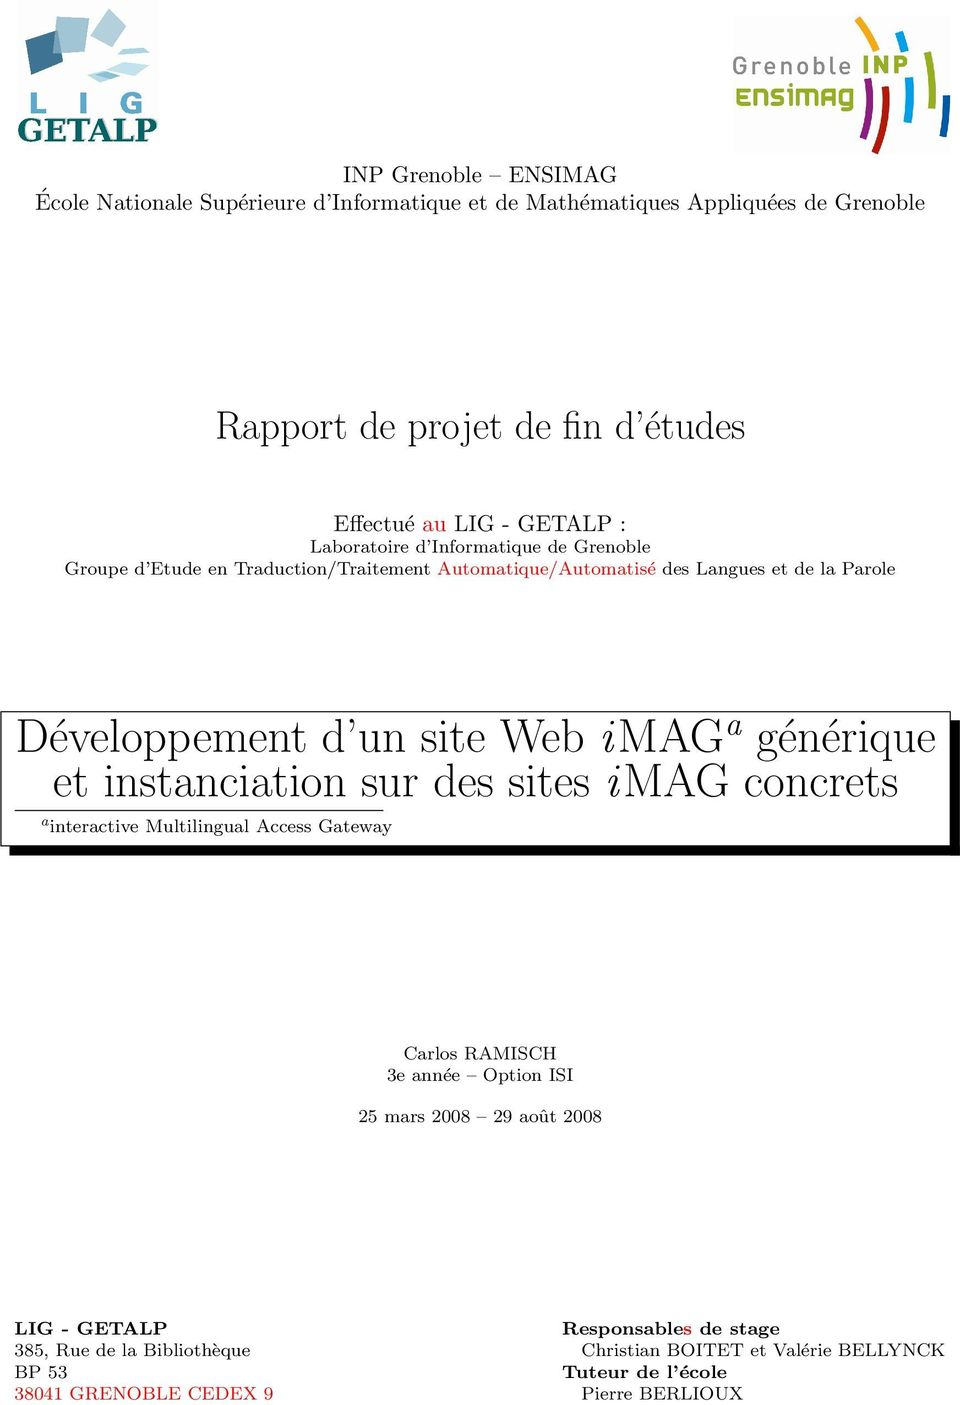 Web imag a générique et instanciation sur des sites i MAG concrets a interactive Multilingual Access Gateway Carlos RAMISCH 3e année Option ISI 25 mars 2008 29